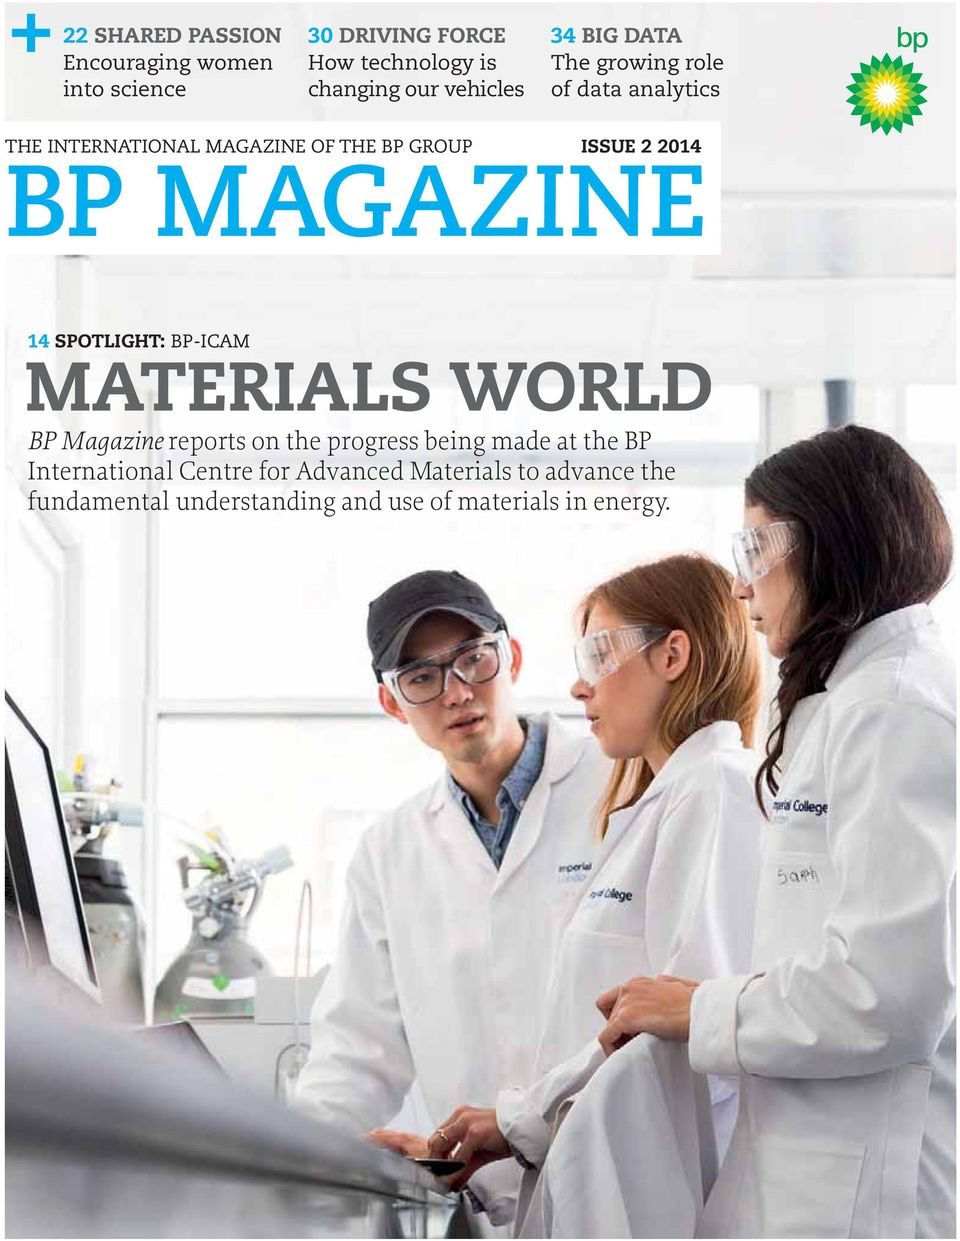 MAGAZINE 14 SPOTLIGHT: BP-ICAM MATERIALS WORLD BP Magazine reports on the progress being made at the BP